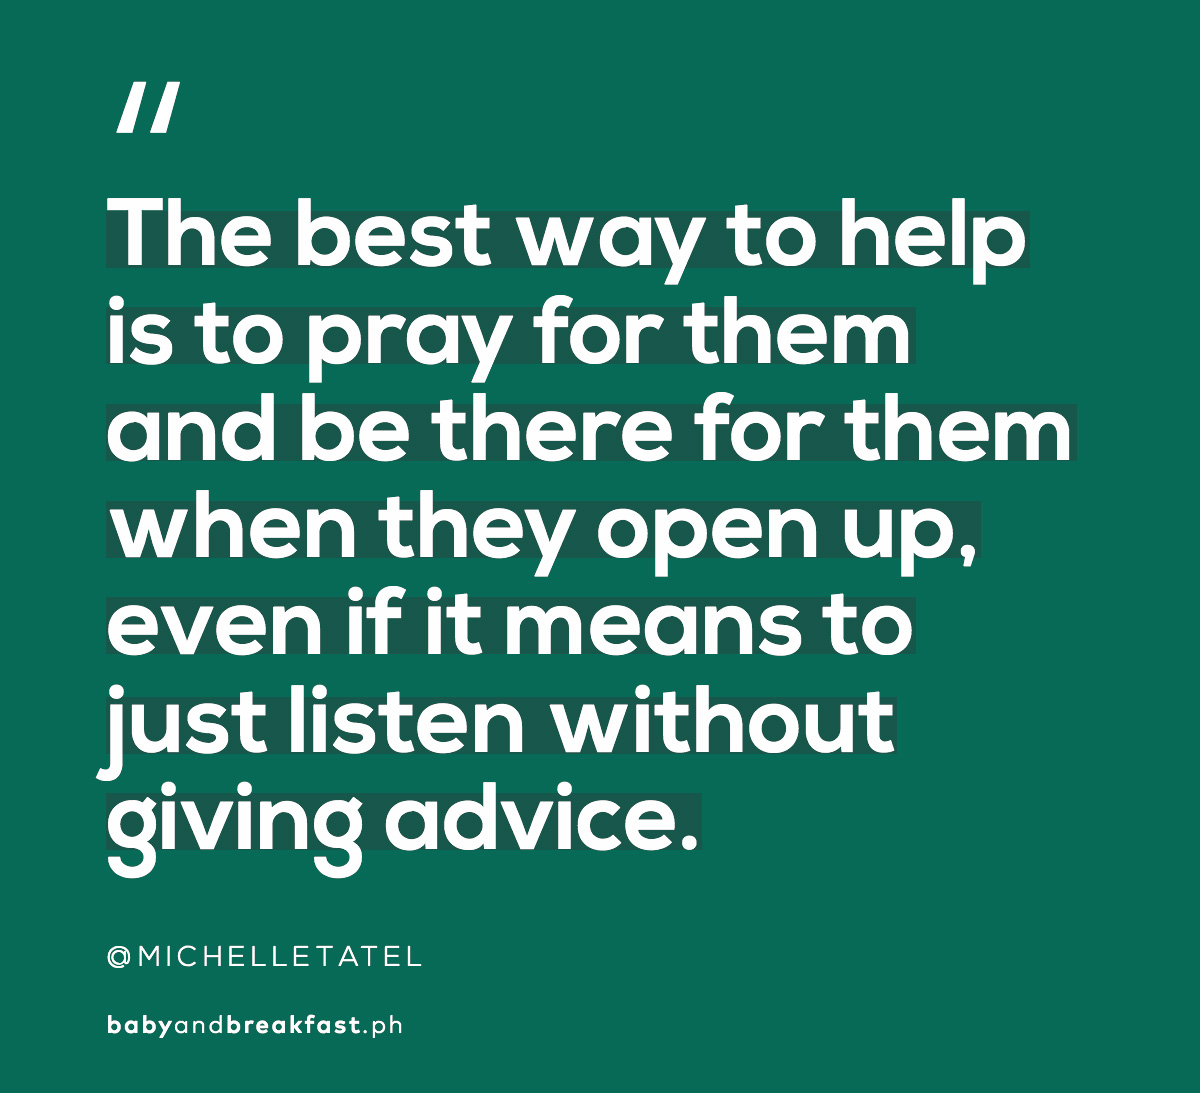 """The best way to help is to pray for them and be there for them when they open up, even if it means to just listen without giving advice."""